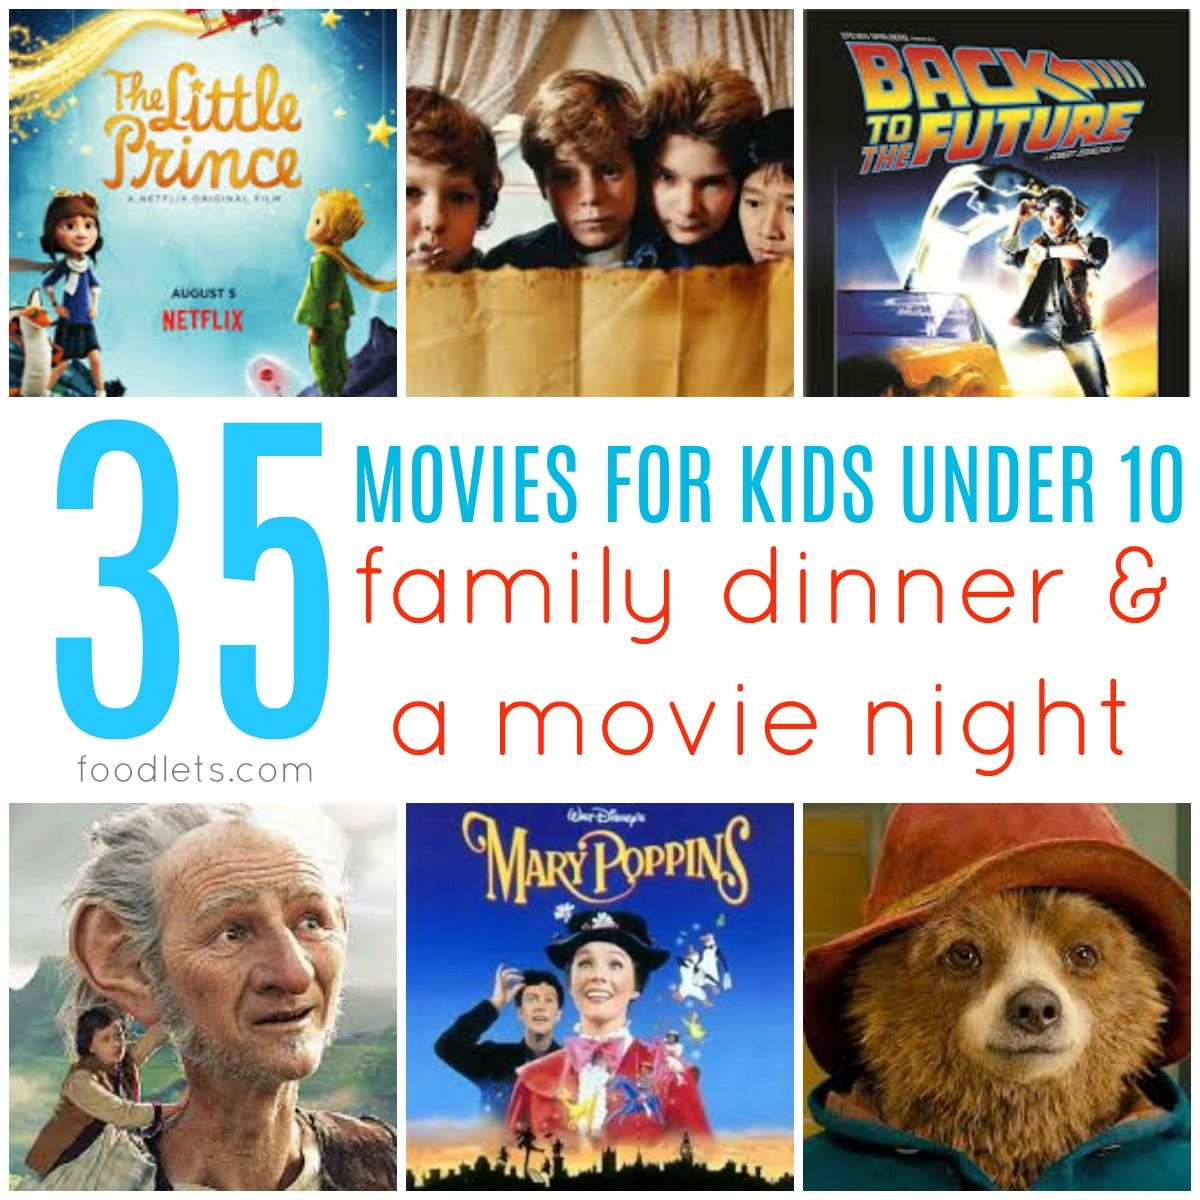 The 25 Best Movies for Kids Under 10 plus crowdpleasing